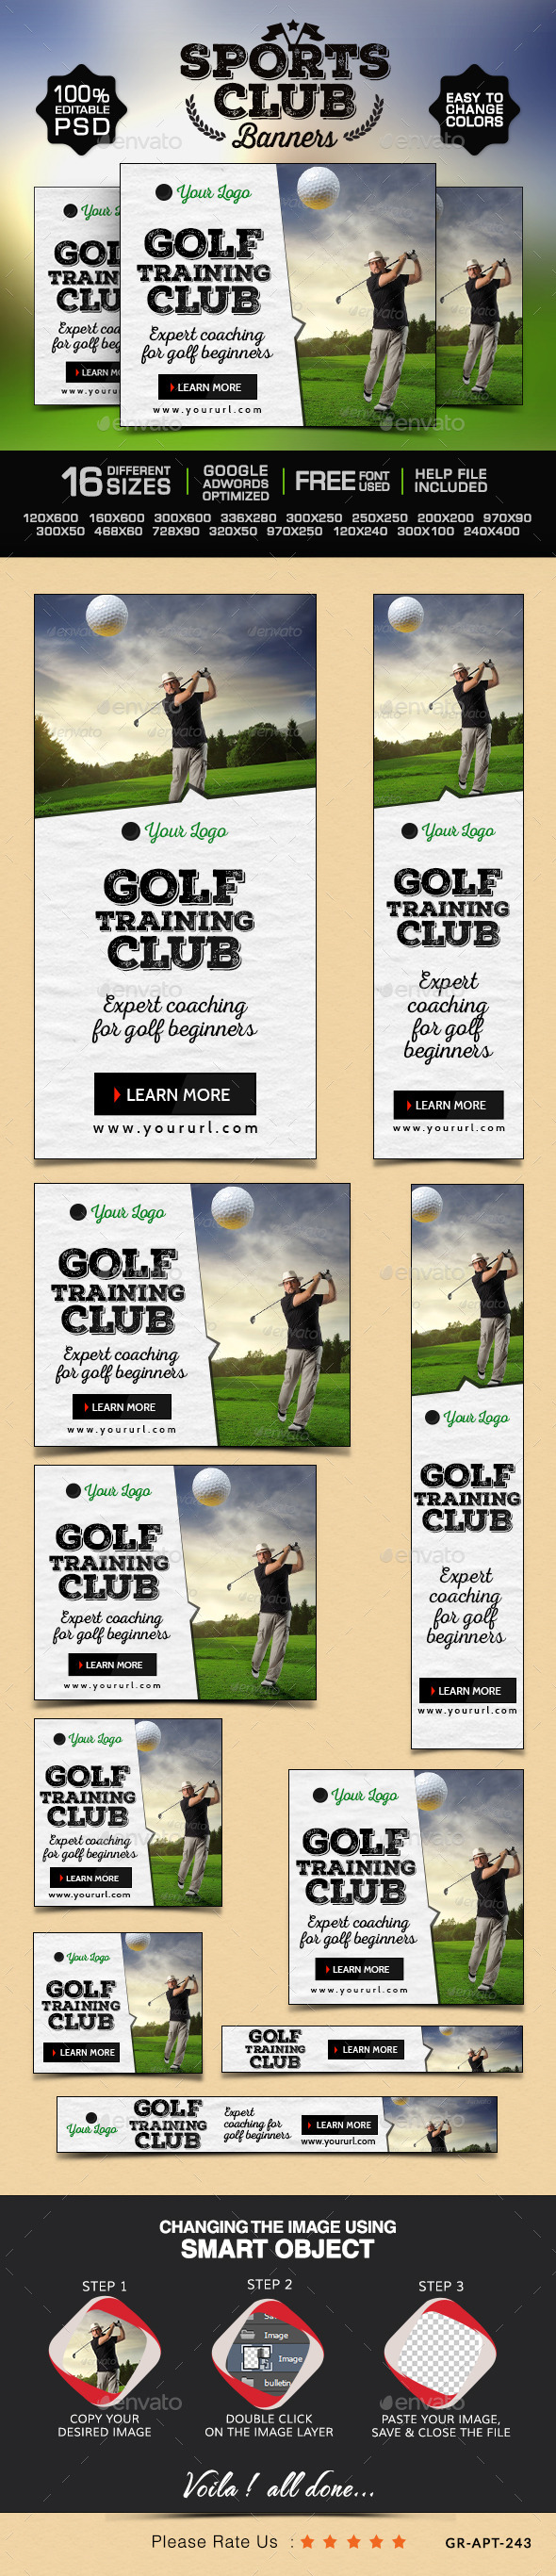 Golf Club Banners - Banners & Ads Web Elements